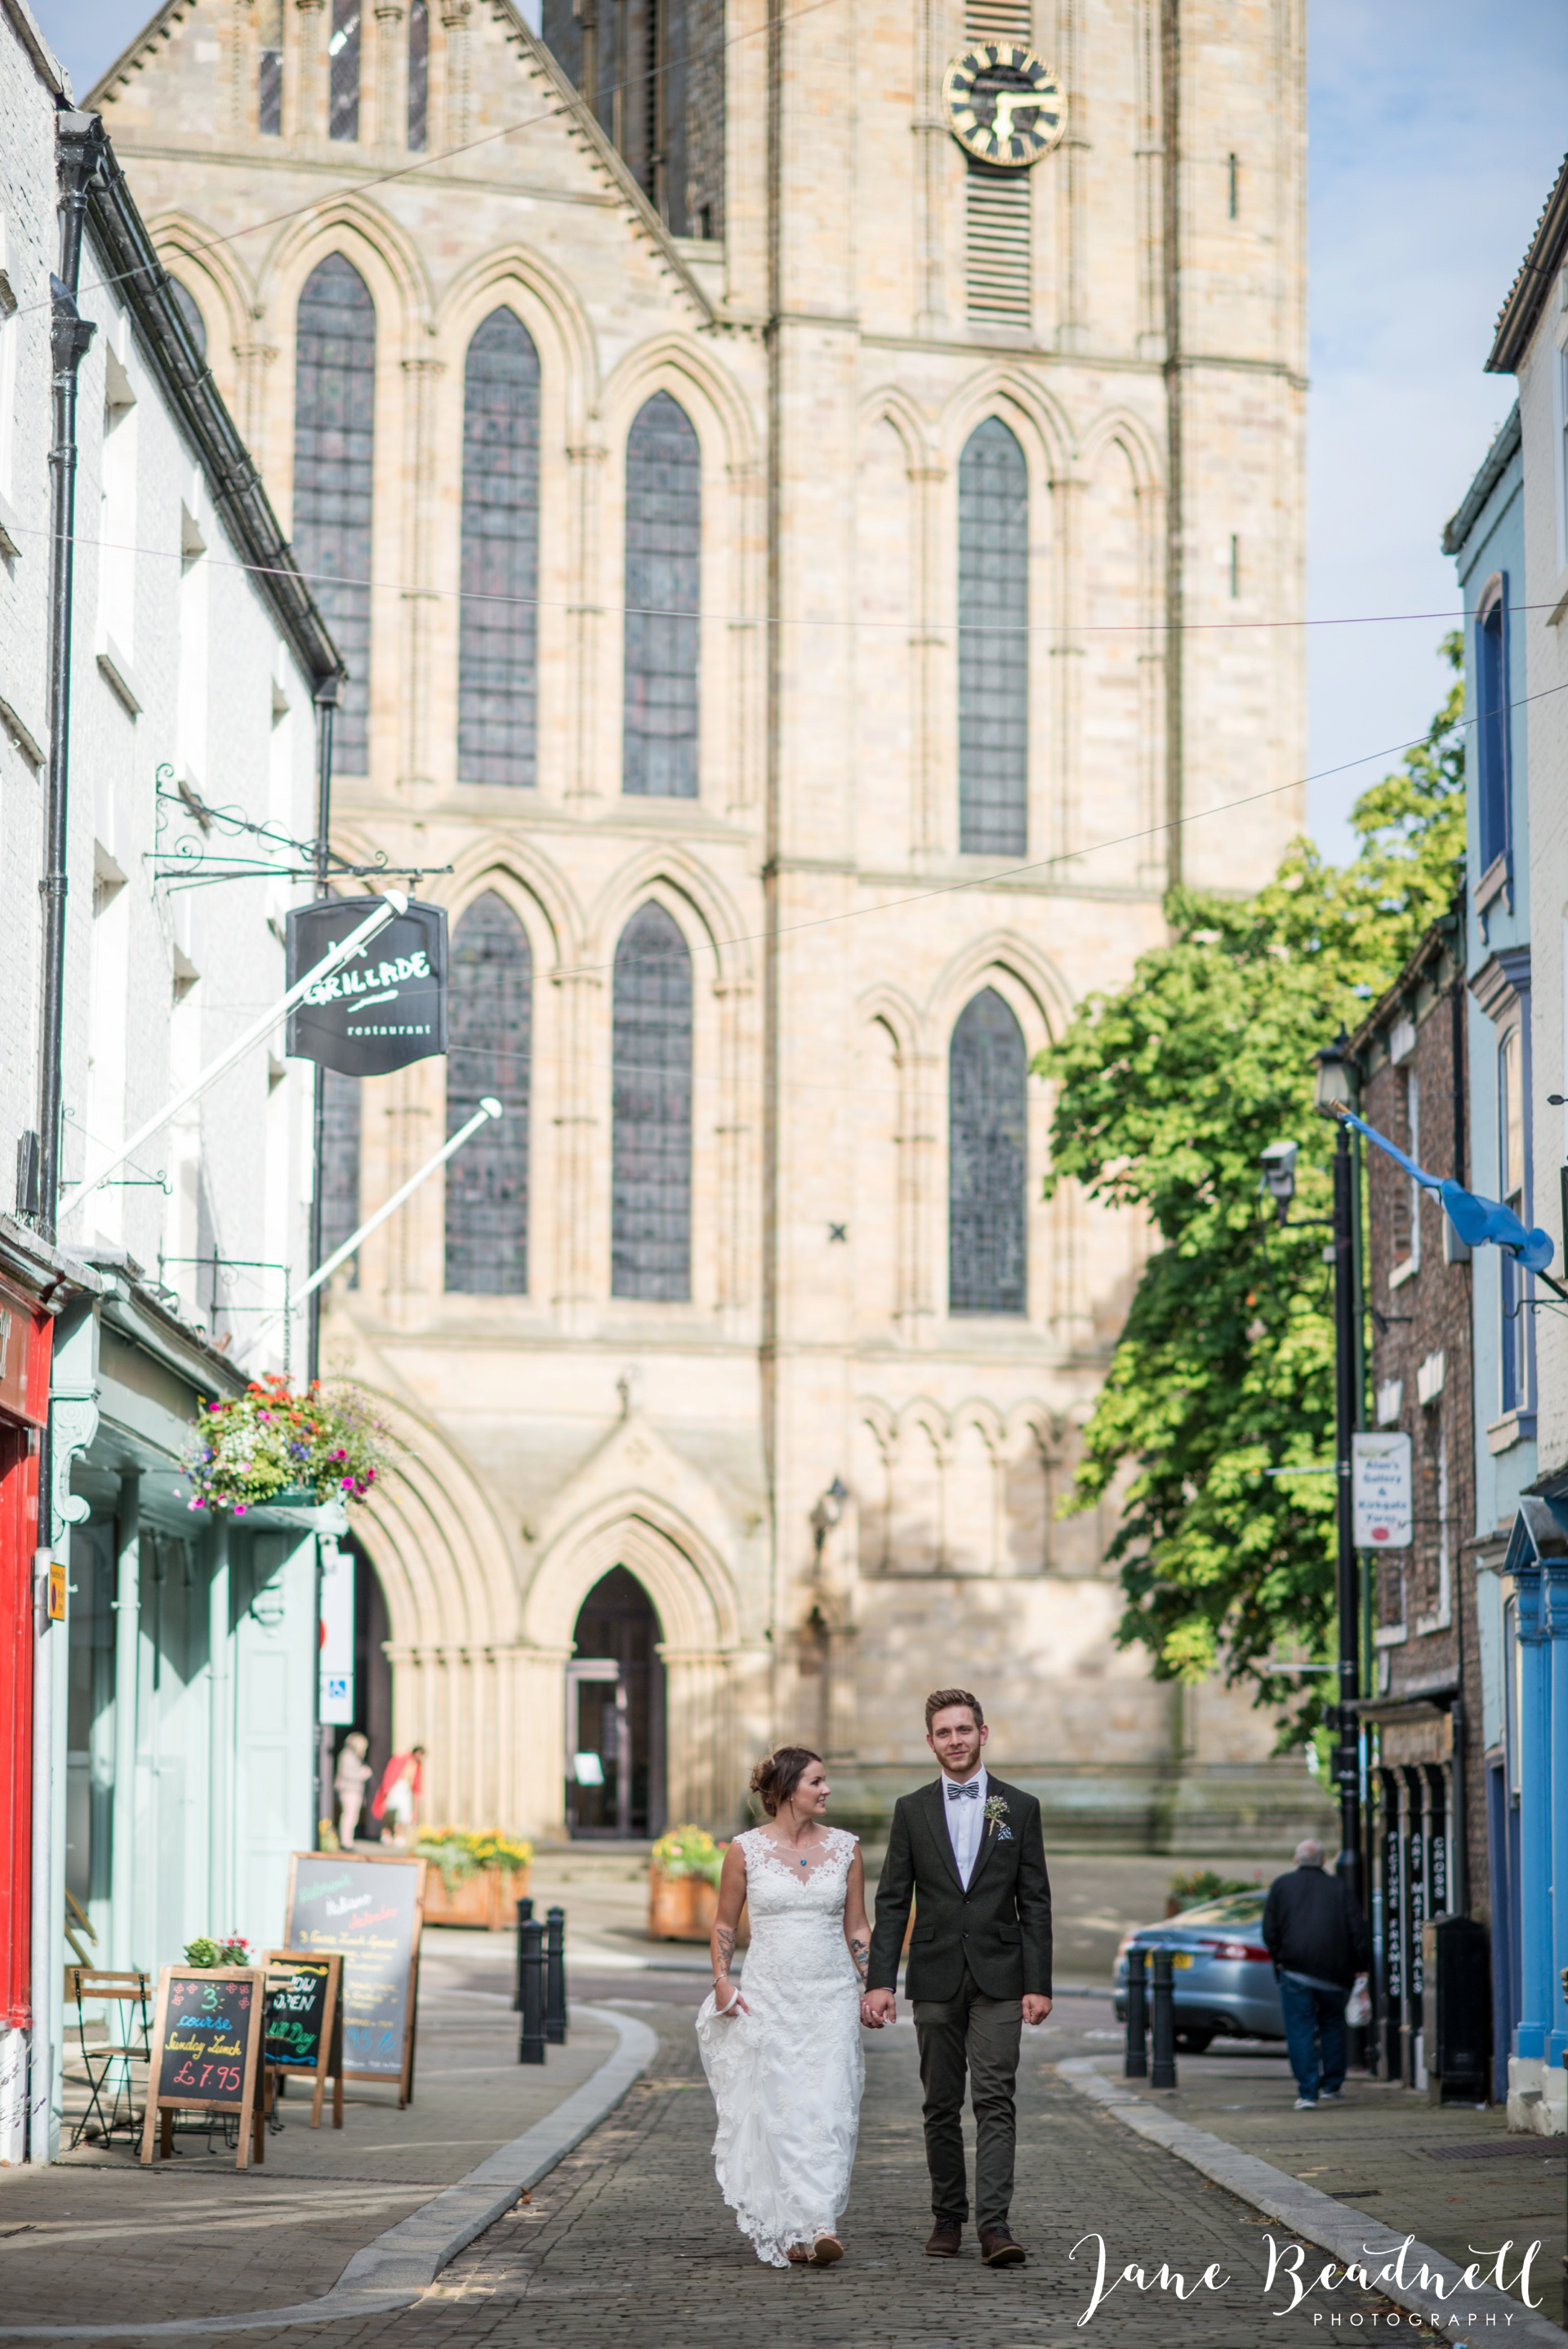 Jane Beadnell fine art wedding photographer The Old Deanery Ripon_0070